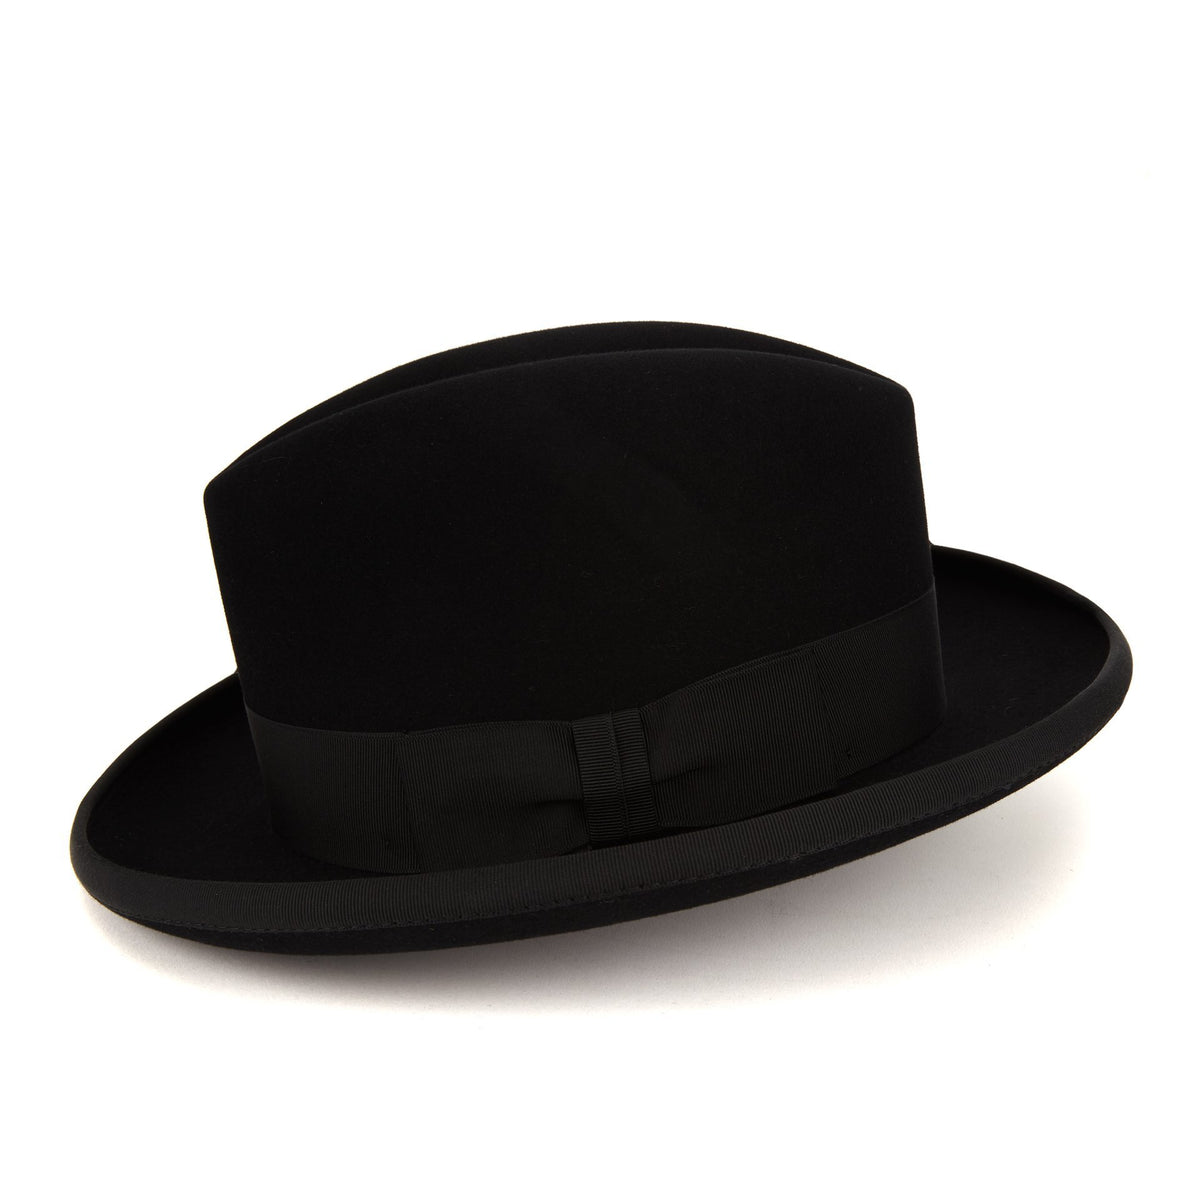 Homburg Lock Co Hats For Men Women Some guys like to wear their homburg for all occasions, though, and that's just. homburg